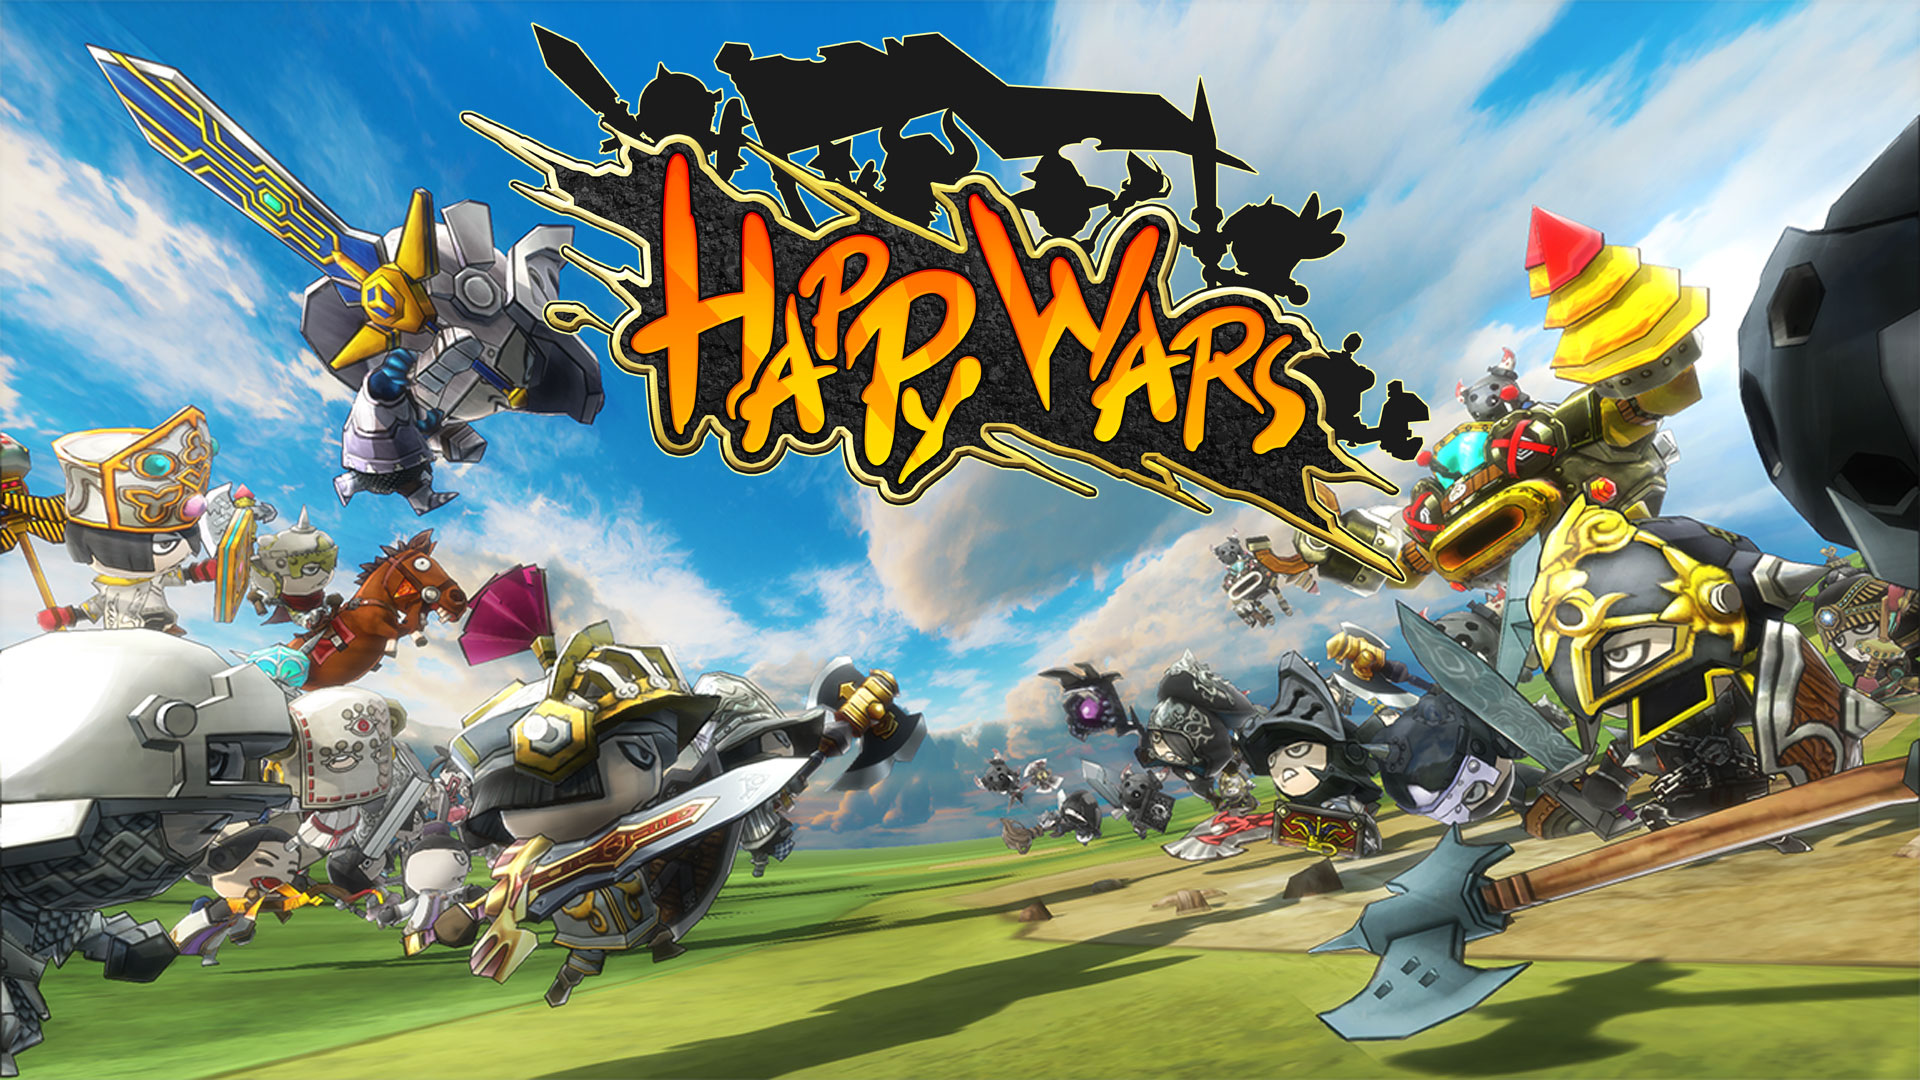 HQ Happy Wars Wallpapers | File 514.45Kb